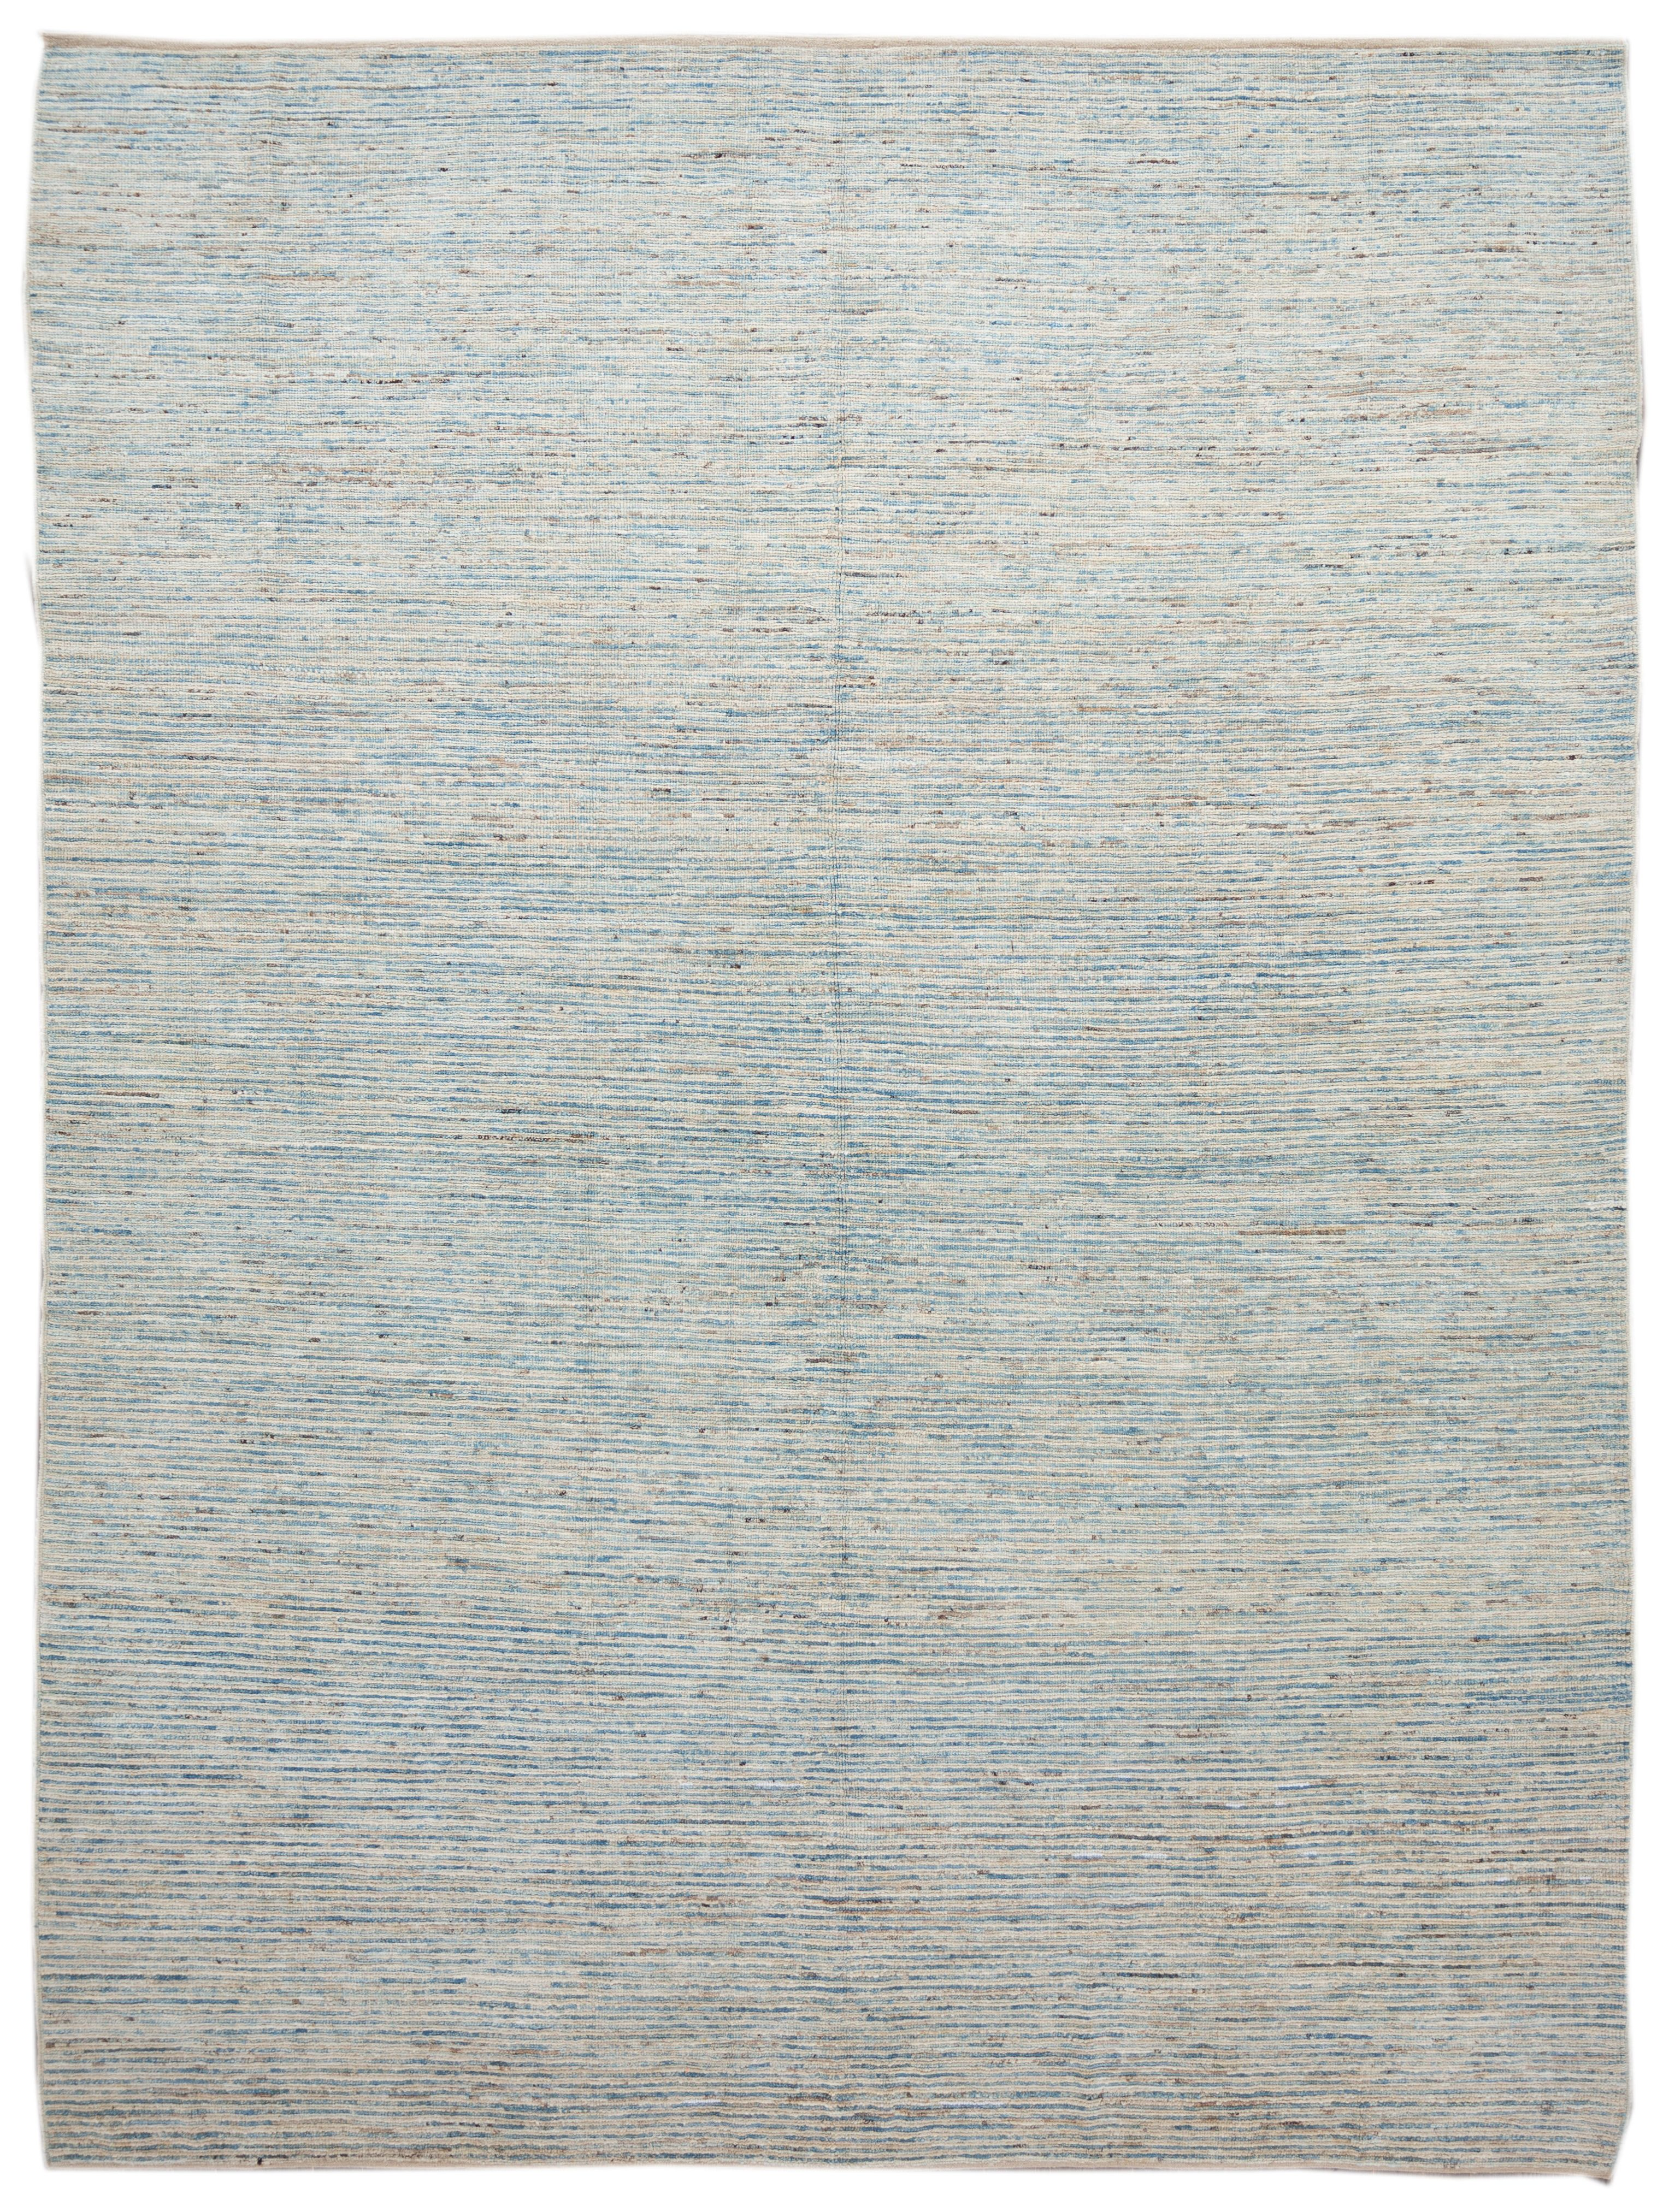 21st Century Modern Moroccan Style Rug 9x12 In 2021 Moroccan Style Rug Modern Moroccan Moroccan Style